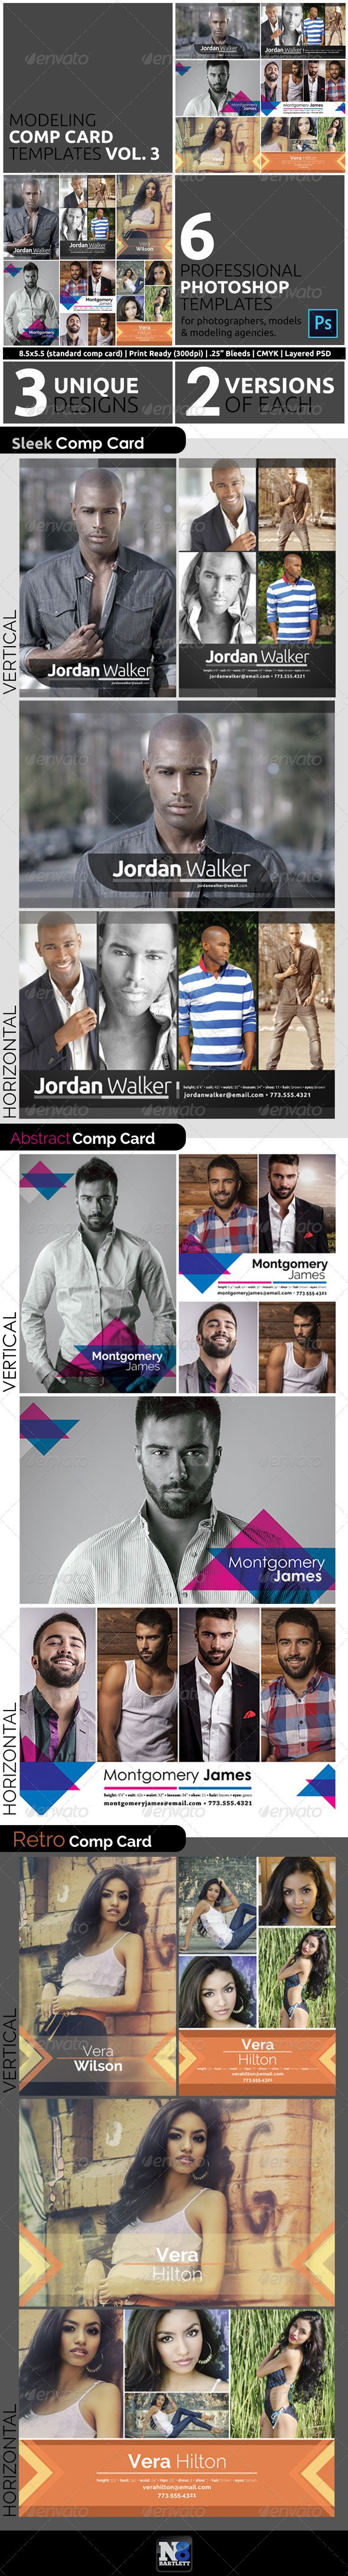 Comp Card Graphics Designs  Templates From Graphicriver With Comp Card Template Psd